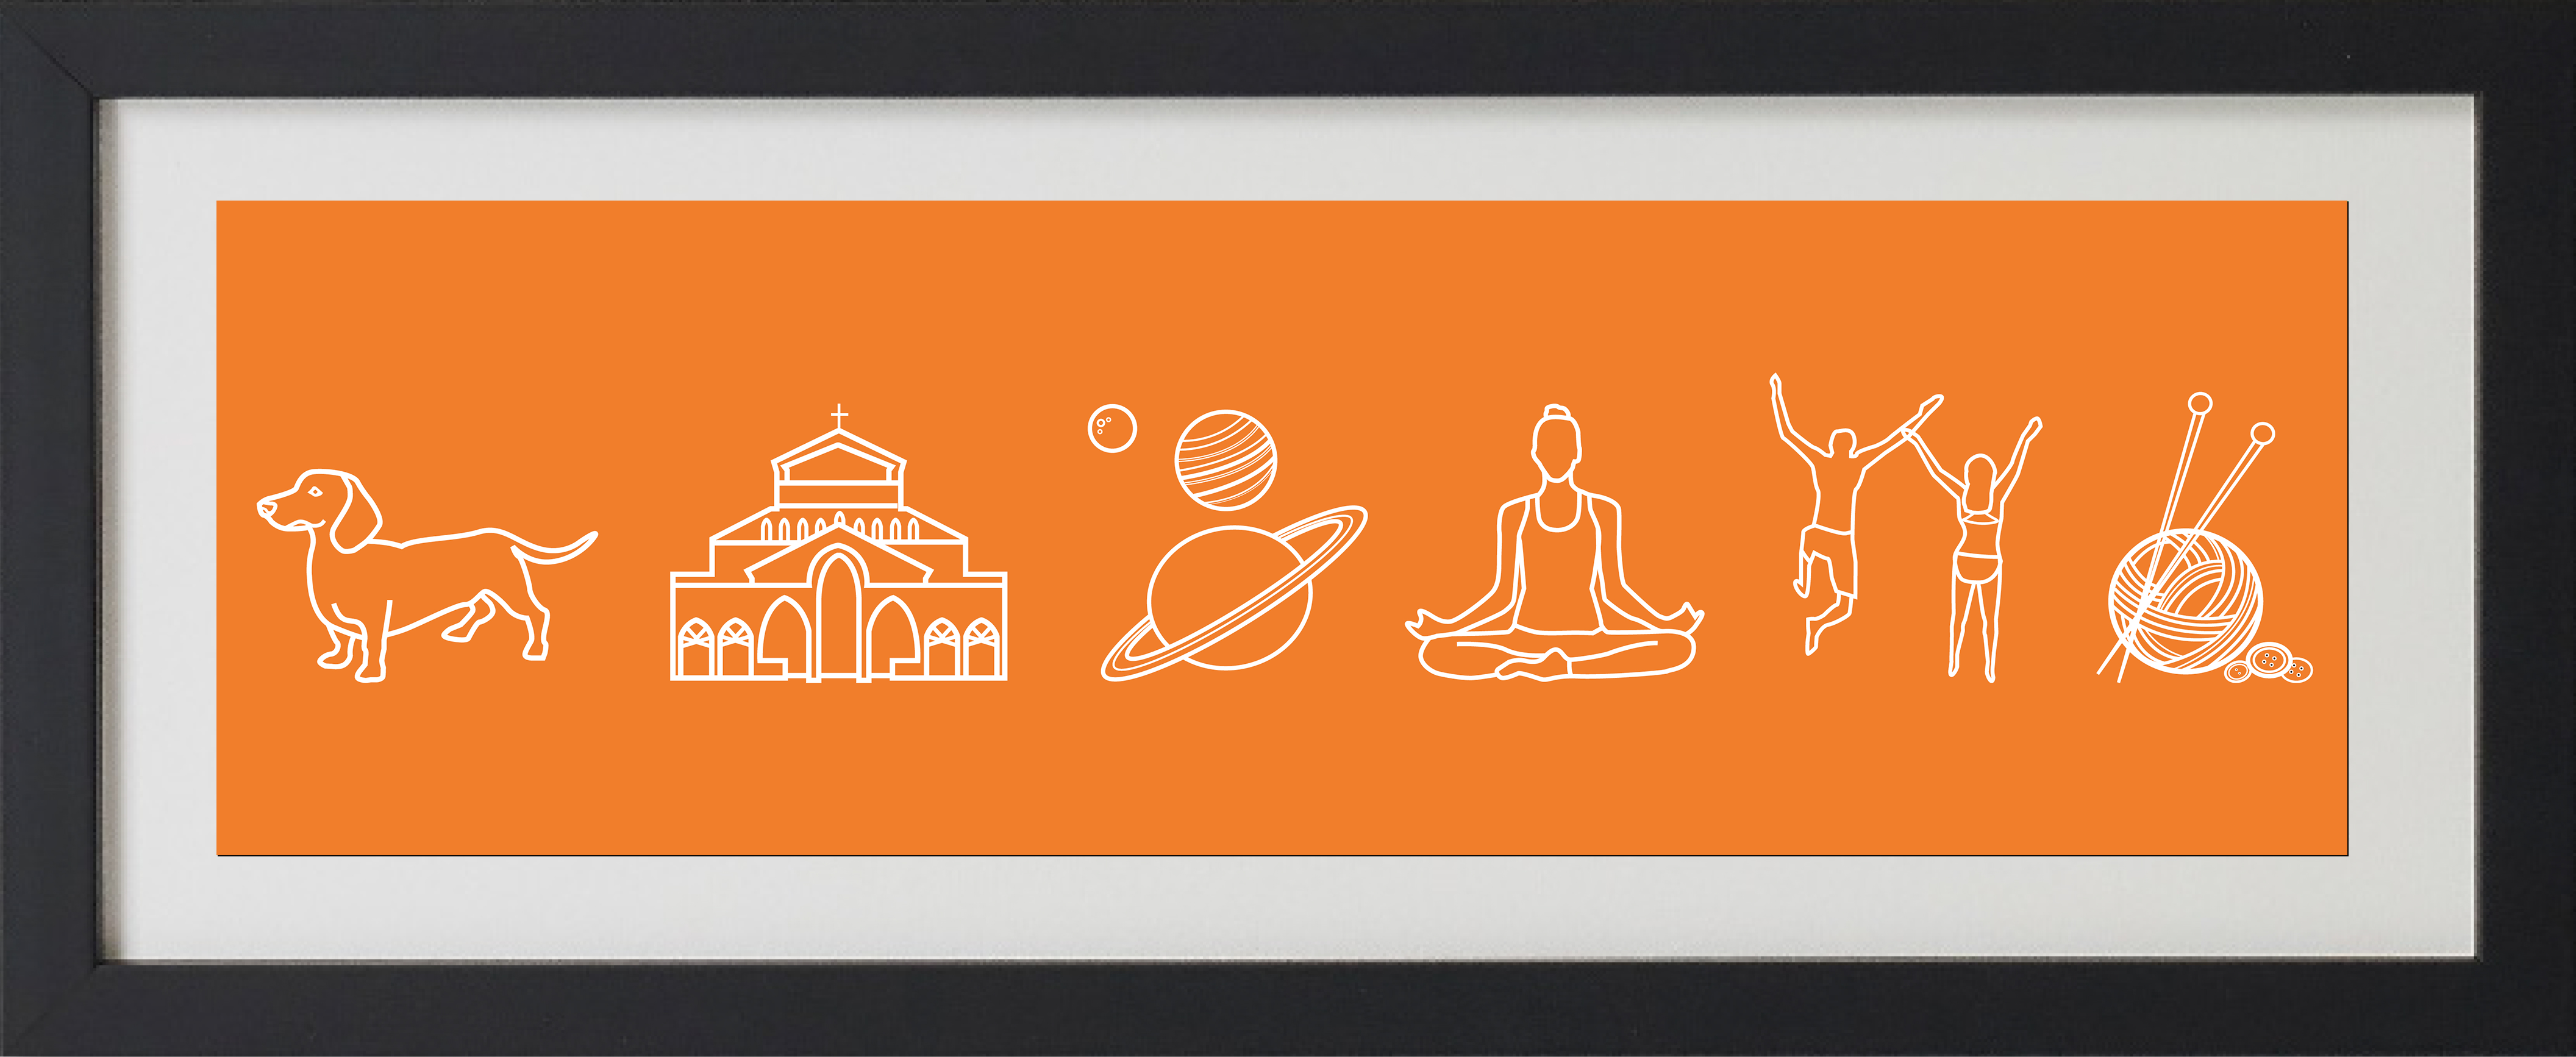 Framed orange print with icons